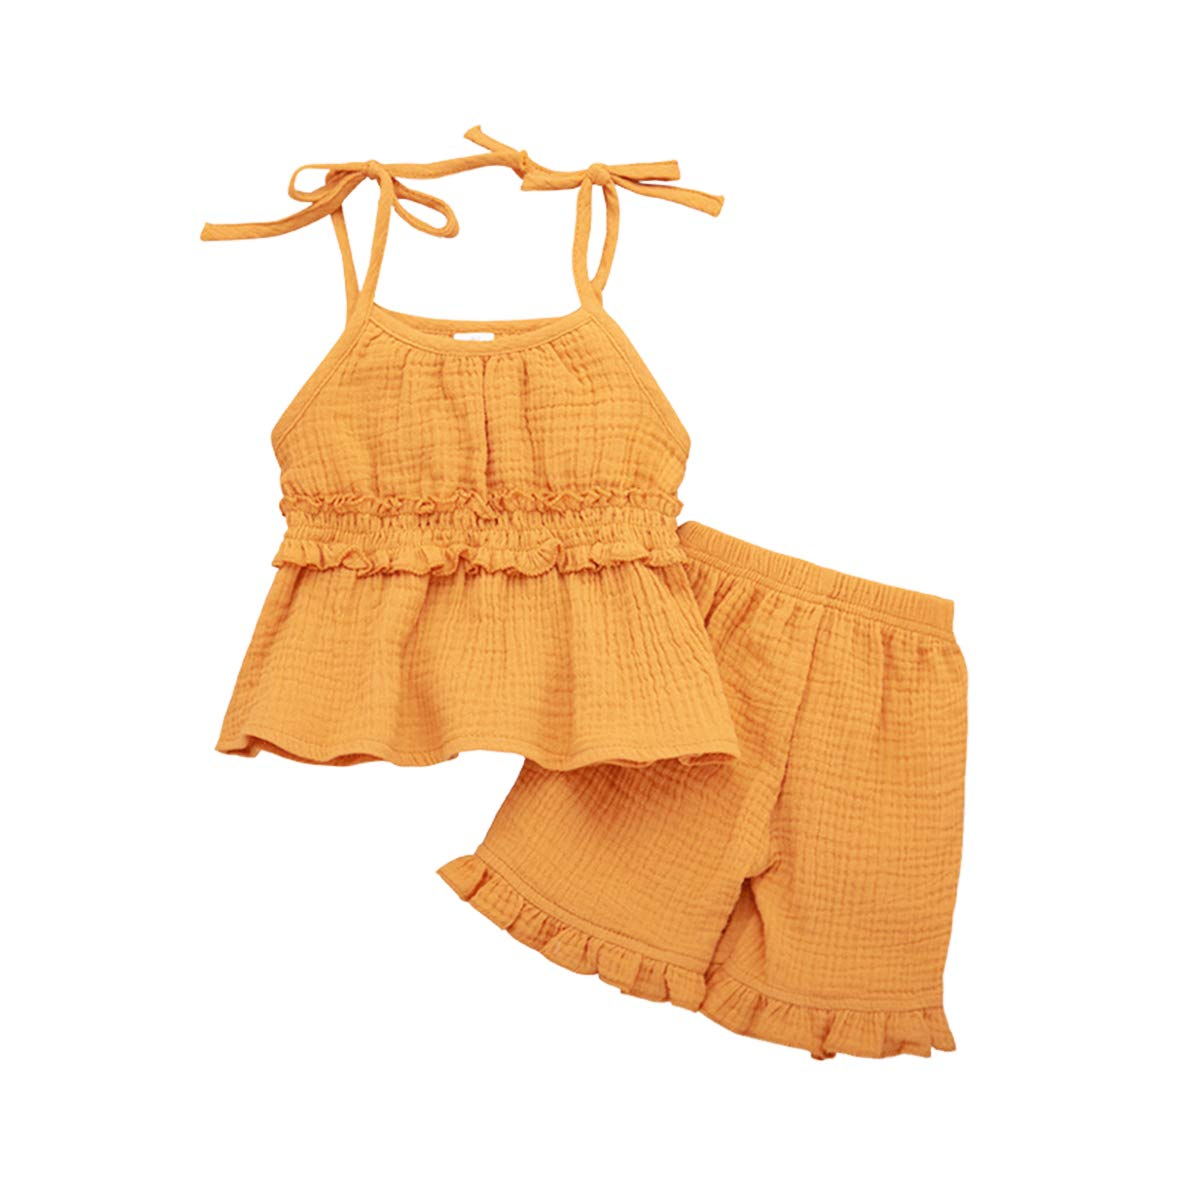 SWNONE 2PCS Toddler Kids Baby Girls Summer Short Set Clothes Ruffle Shoulder Straps Dress Top Pants Set Linen Outfits